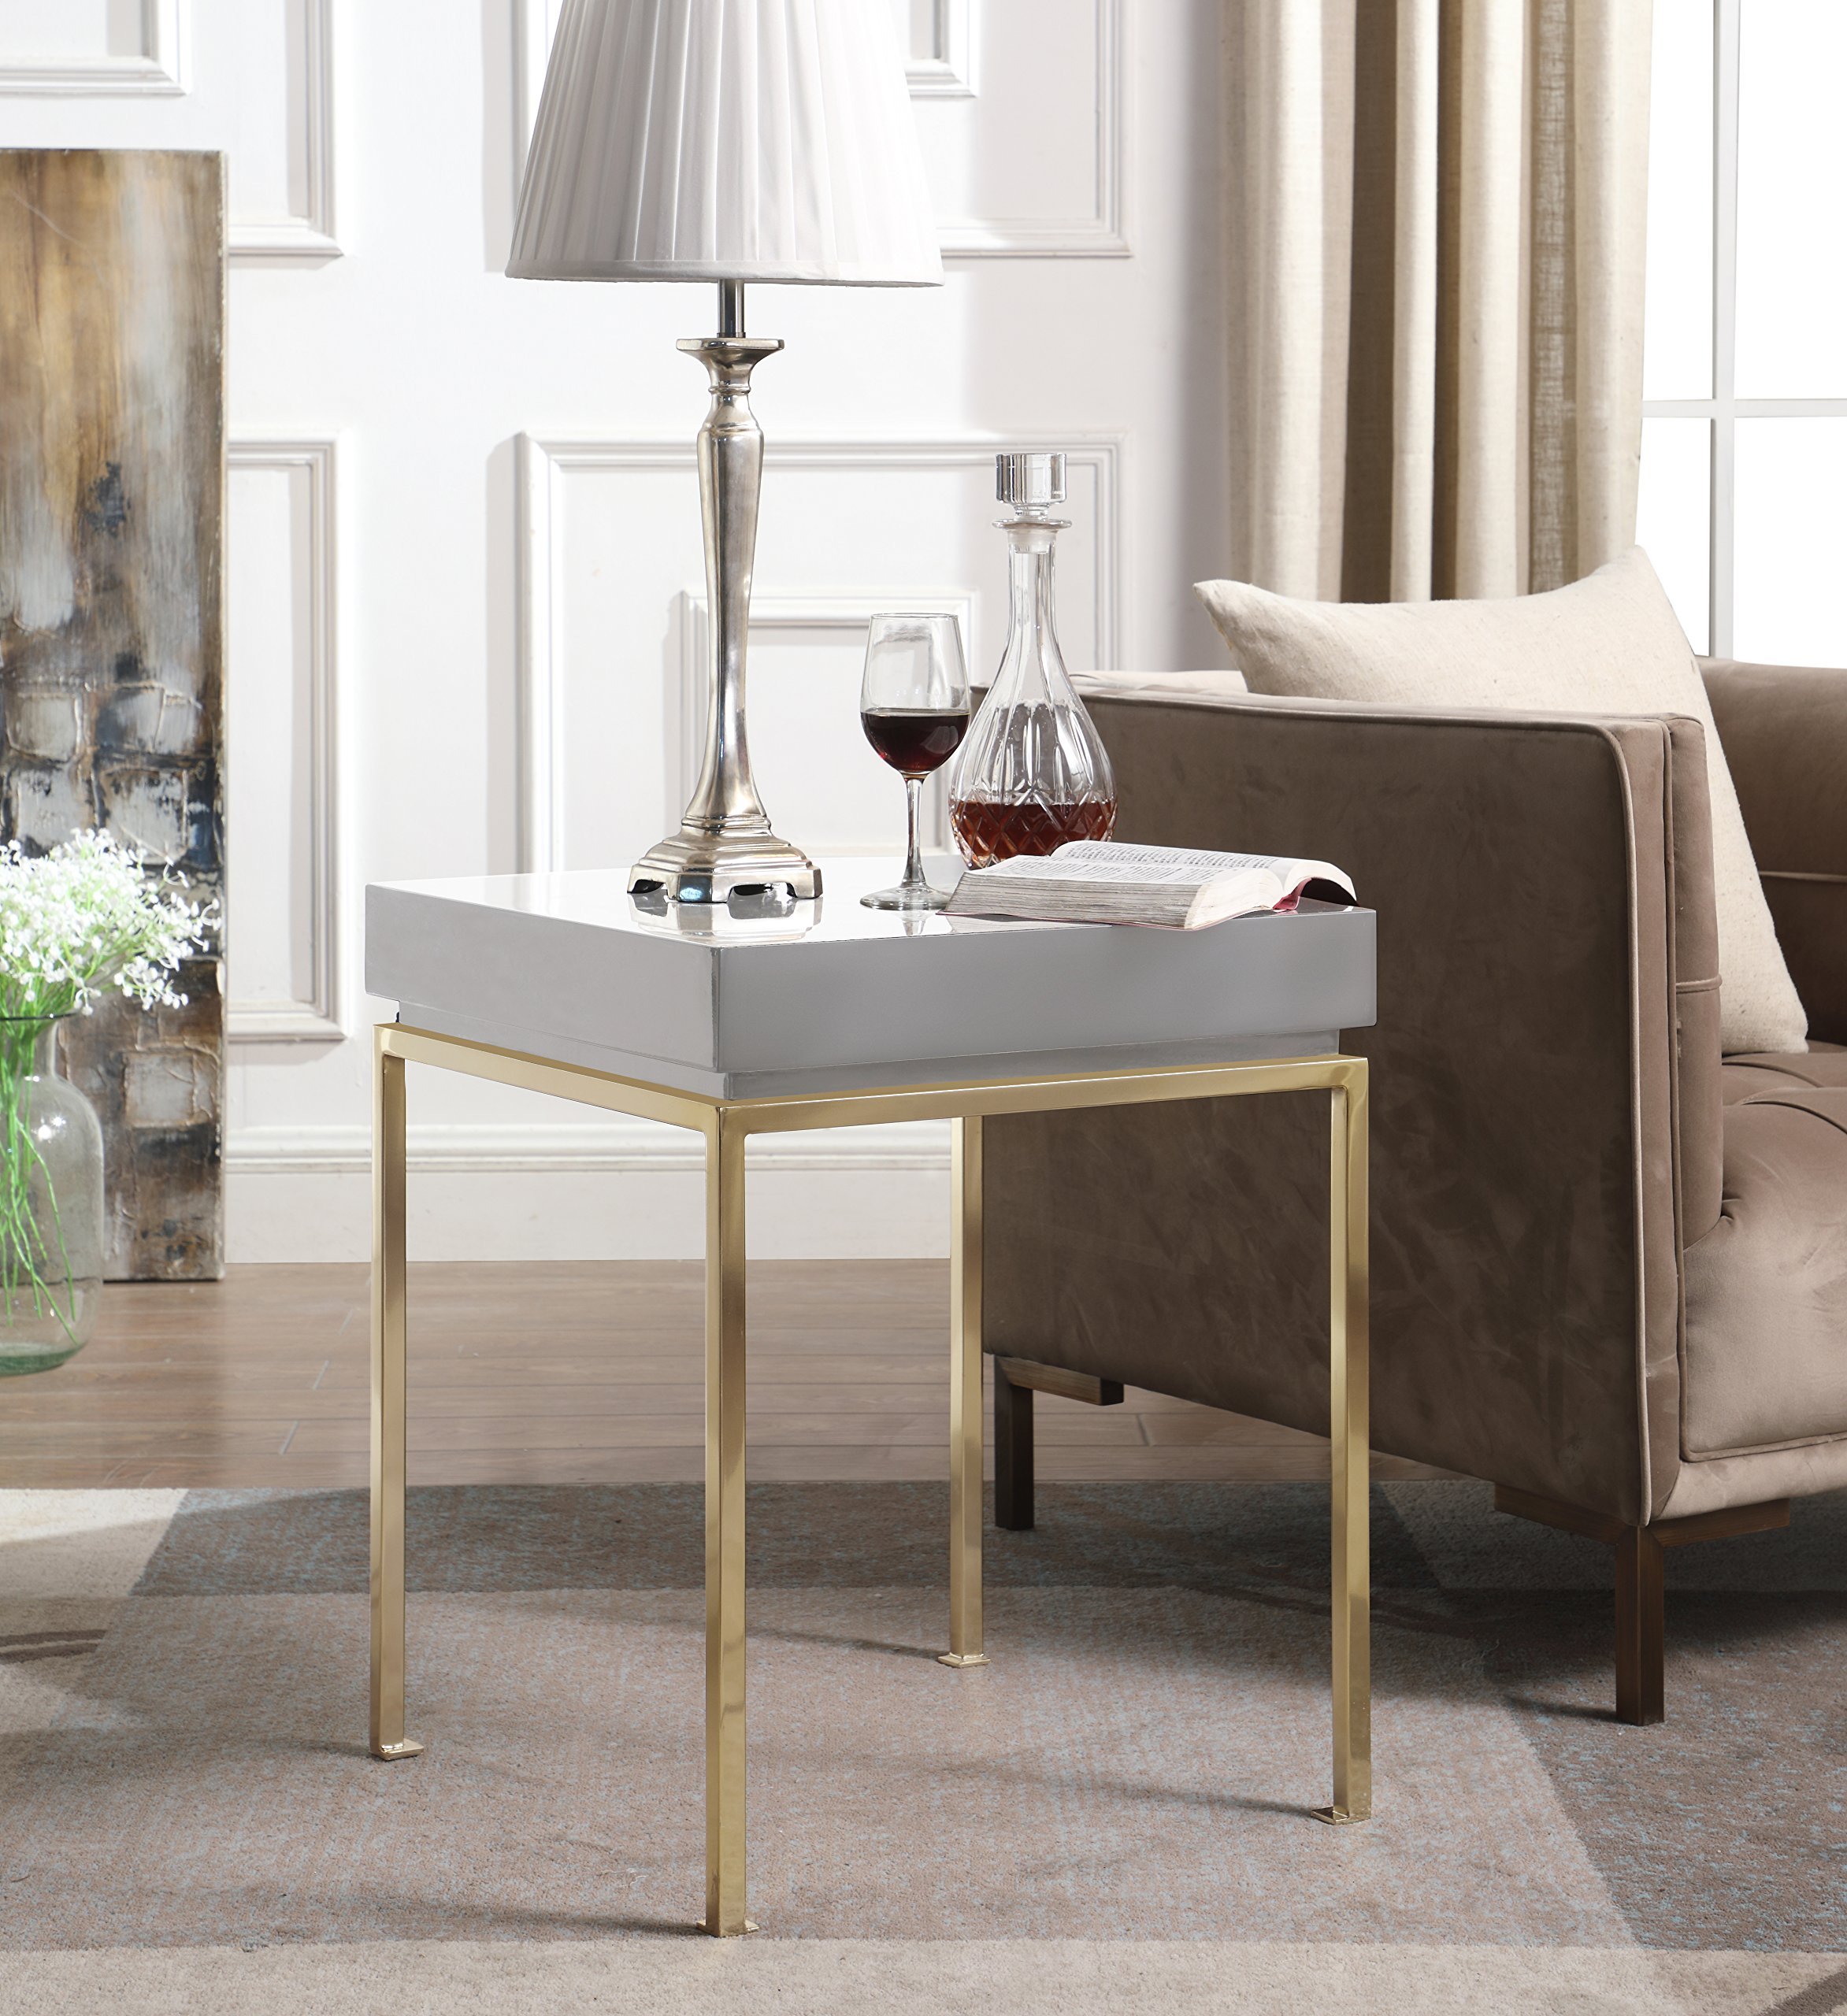 Iconic Home Cannes Nightstand Side Table Square Frame High Sheen Lacquer Finsh Top Gold Plated Metal Legs, Modern Contemporary, Grey by Iconic Home